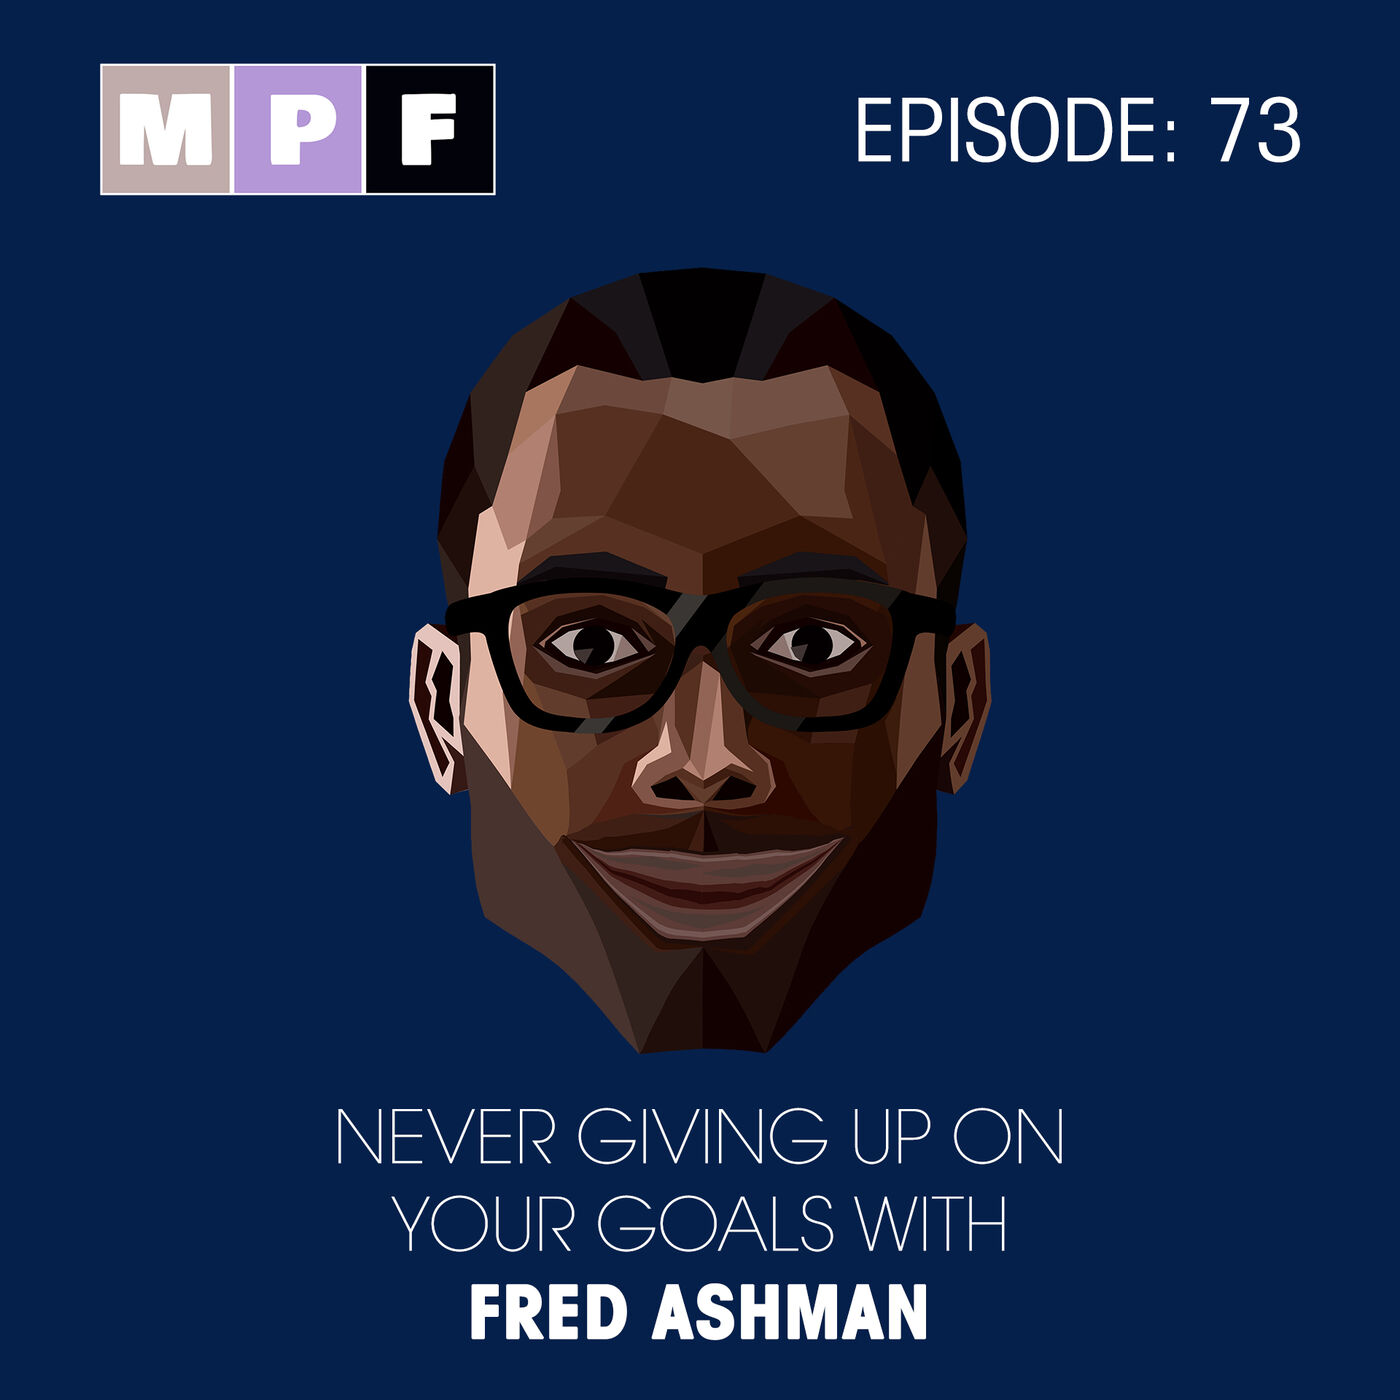 Never Giving Up On Your Goals with Fred Ashman